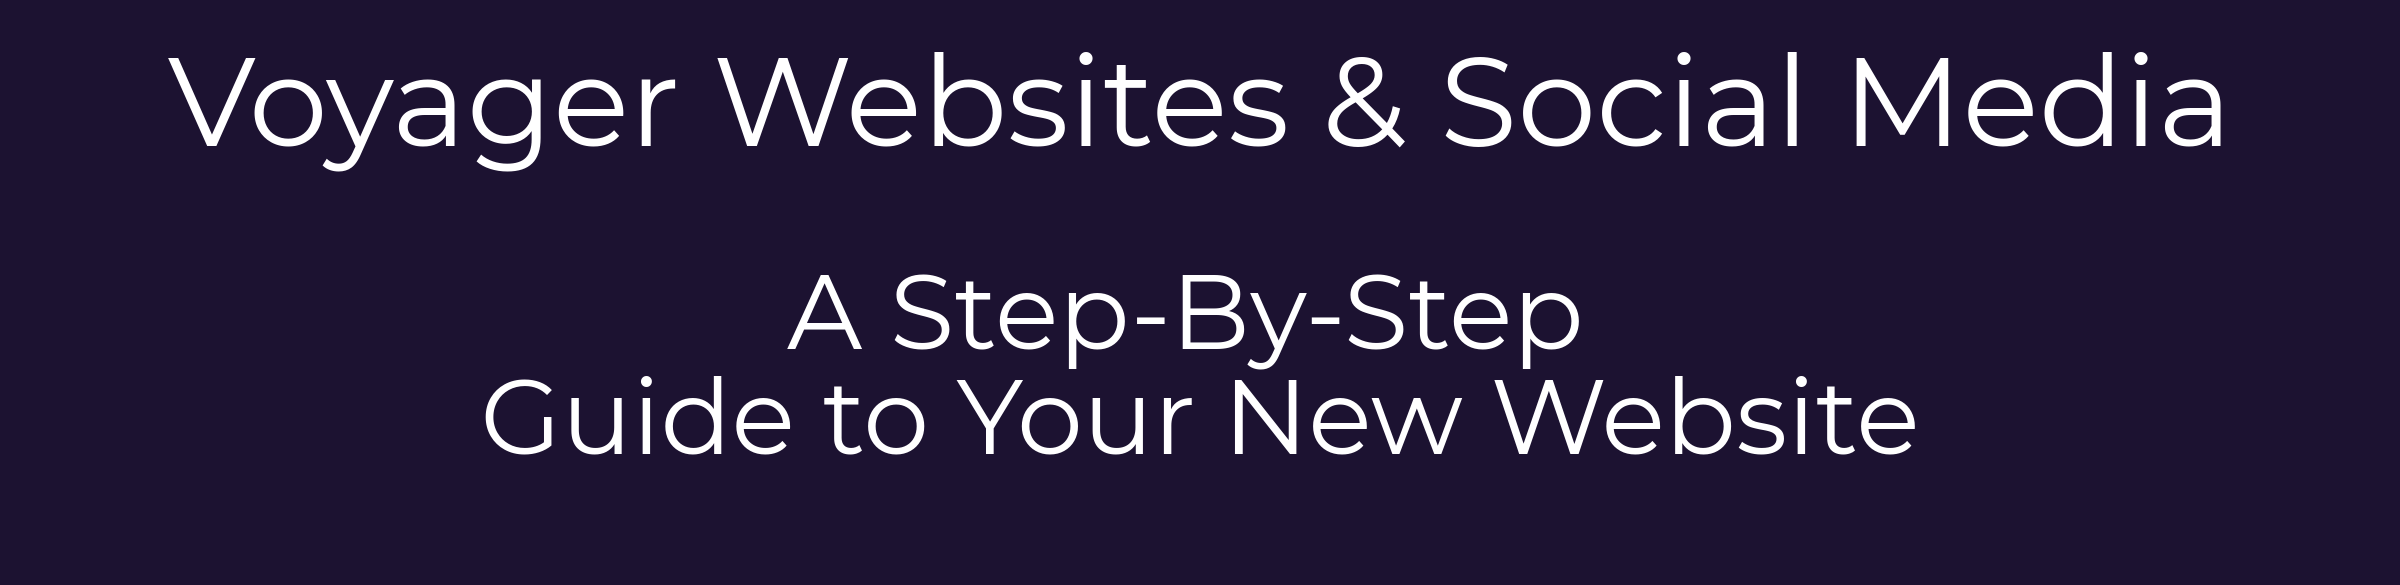 Voyager websites: a step by step guide to your new website